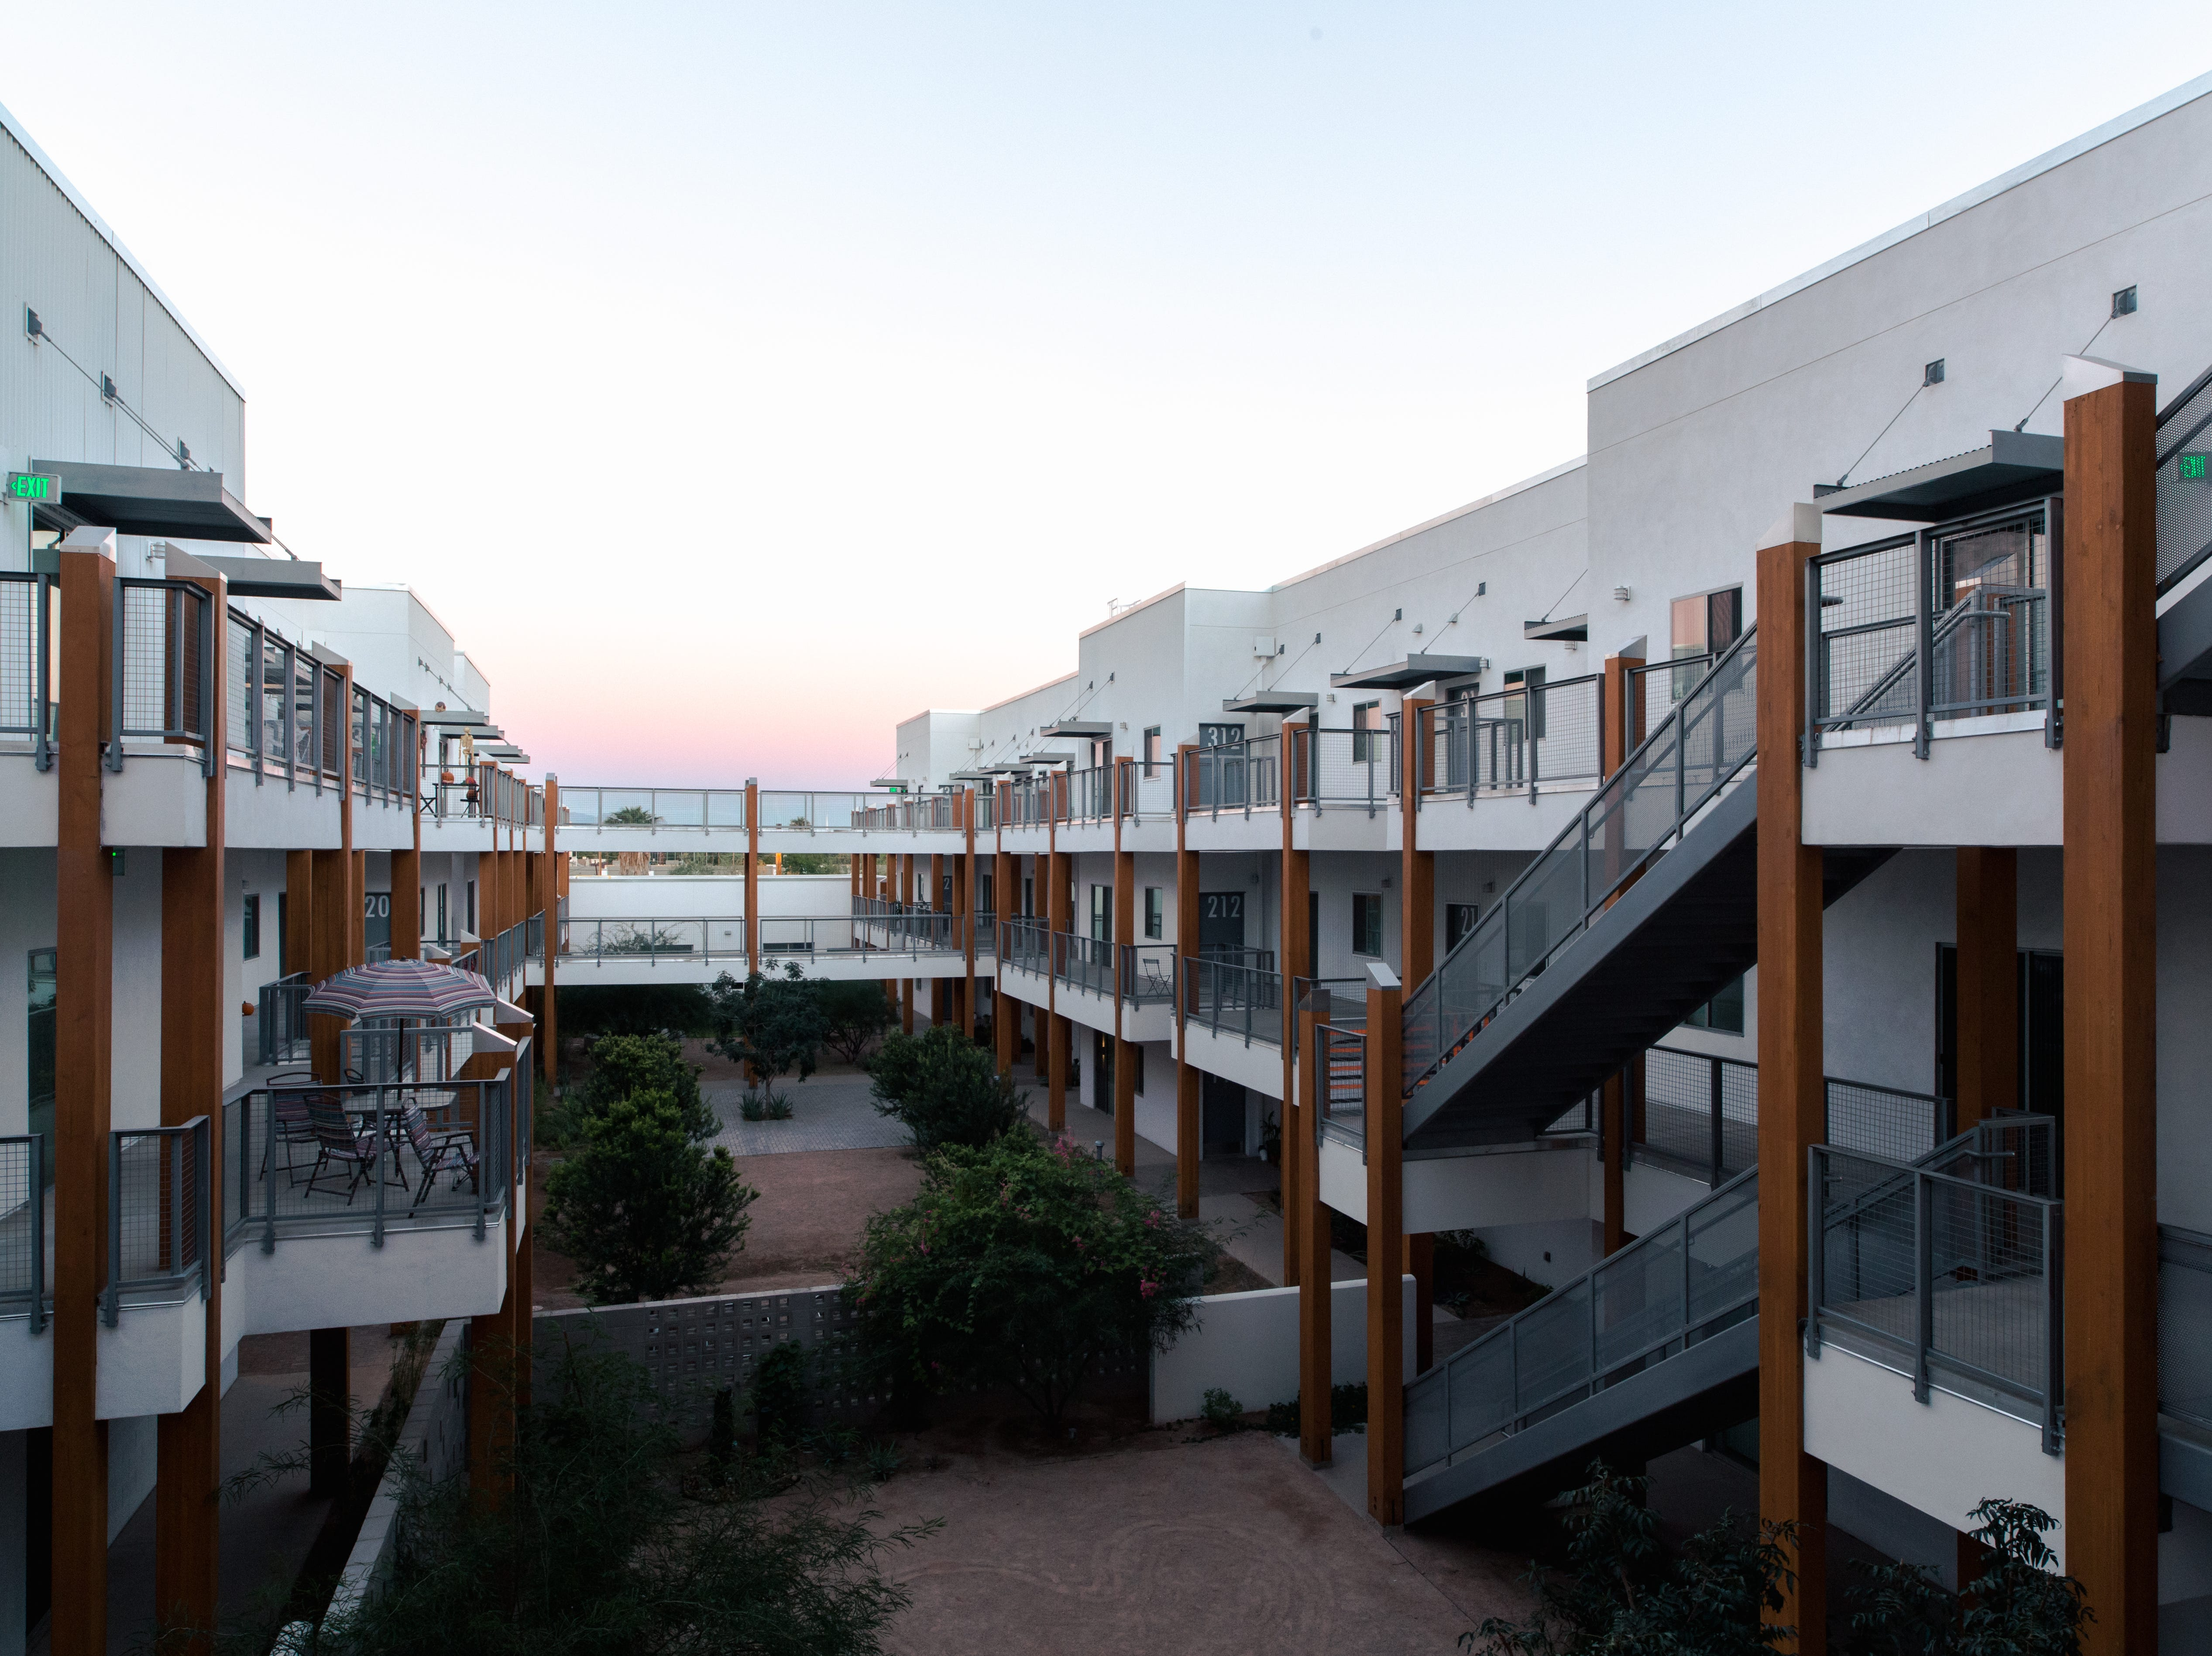 Exterior staircases, common outdoor spaces that revolve around light and native species, shade and walkways that are tailored to a desert climate are among the features unique to the Artspace Lofts Mesa complex.